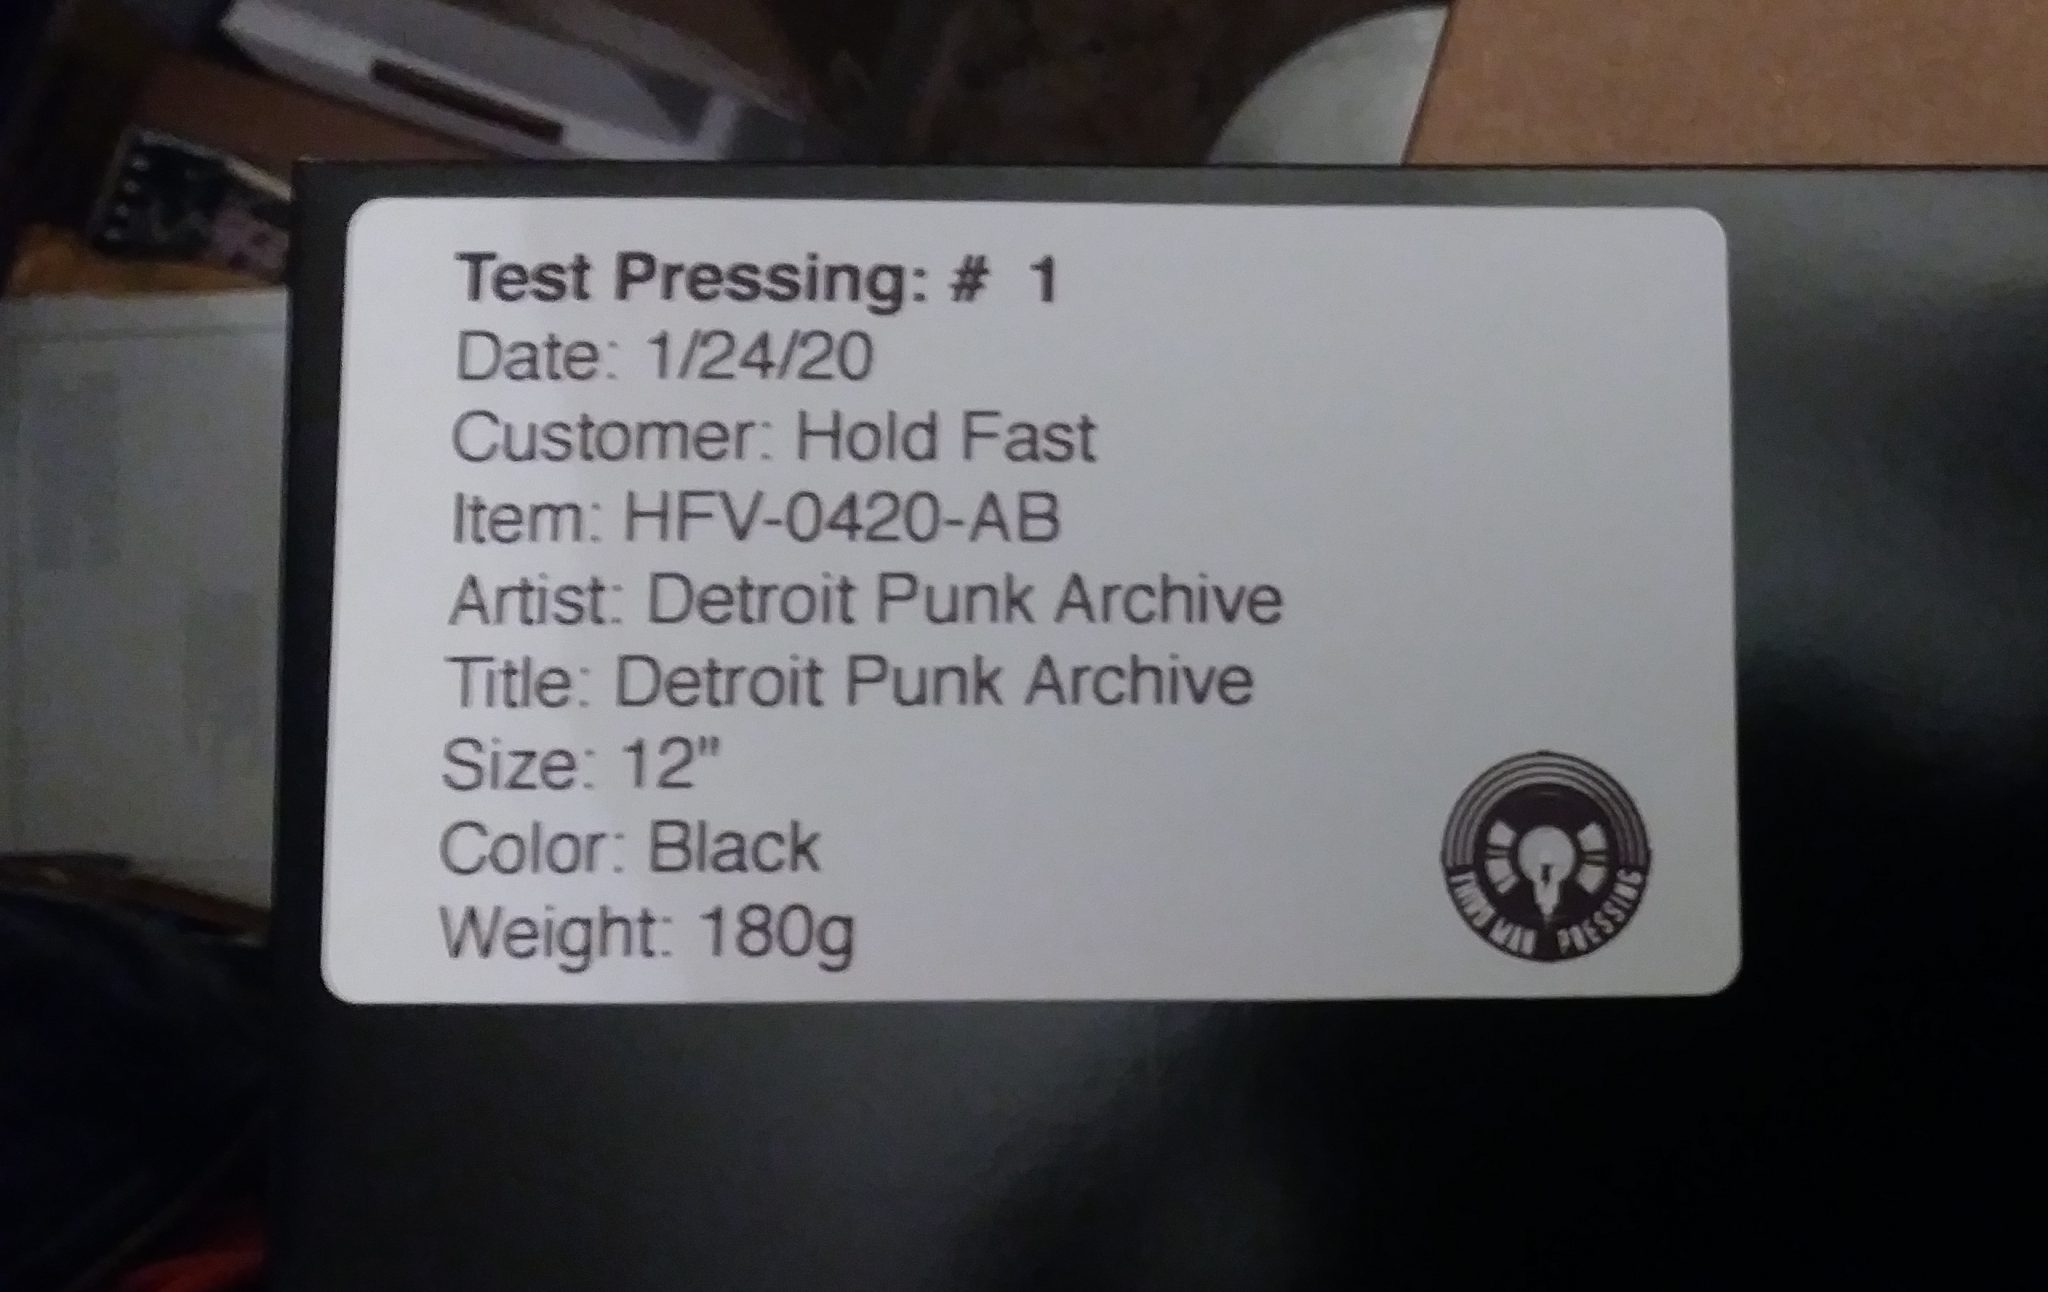 Test Press Pic 1